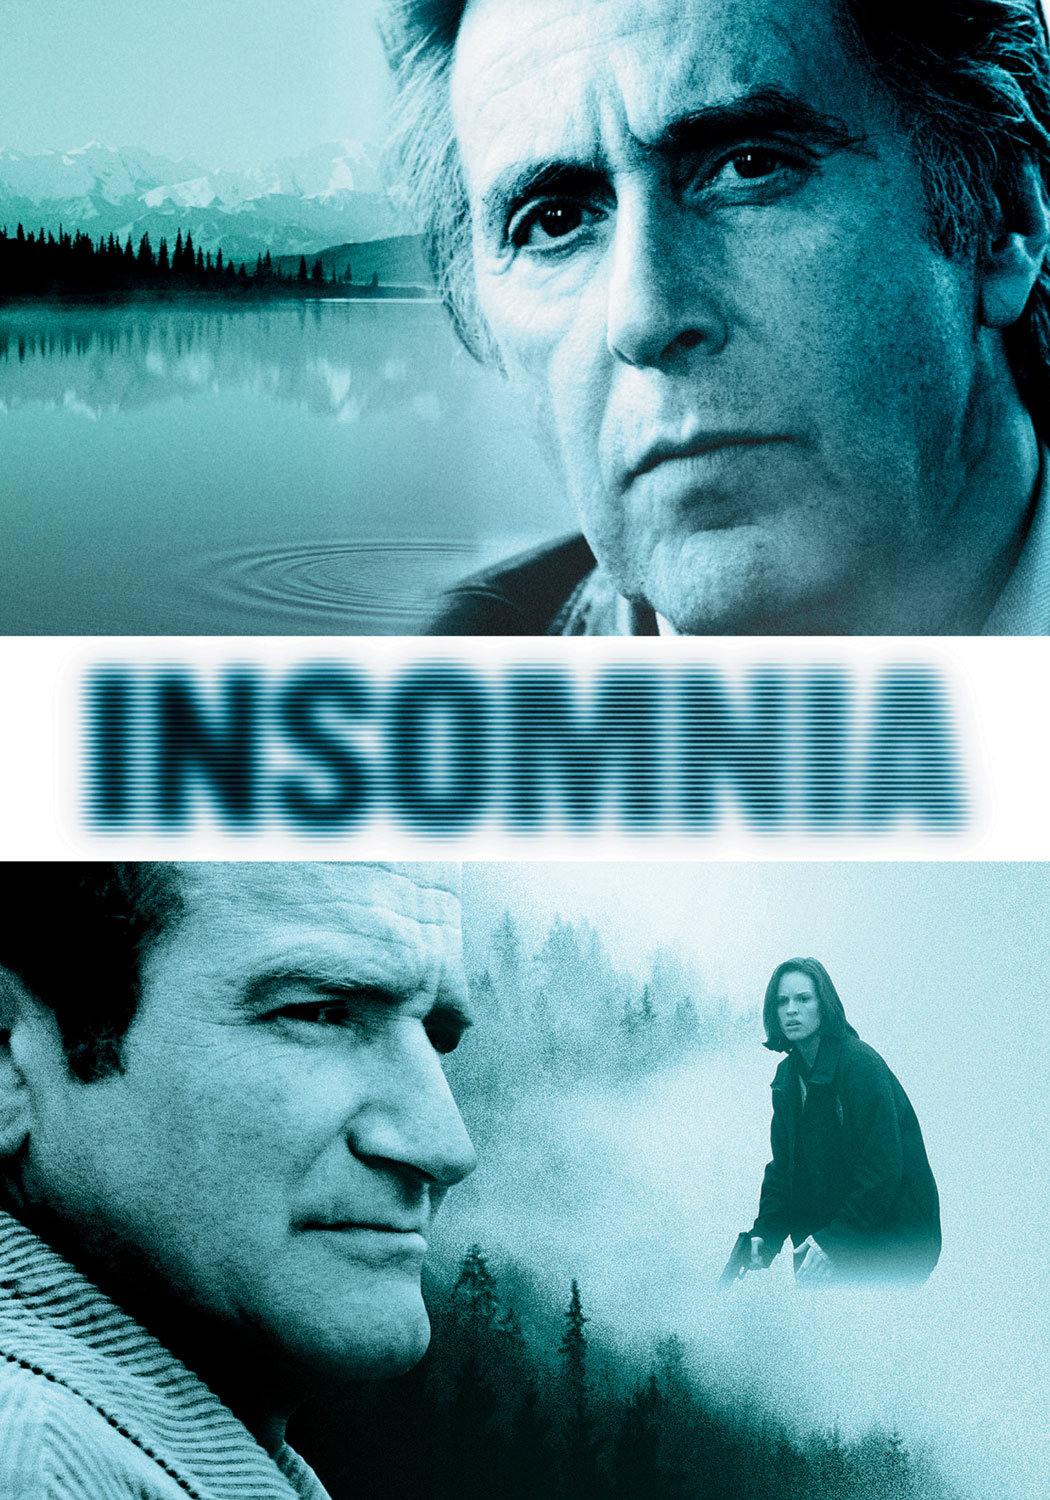 Episode 040: Insomnia